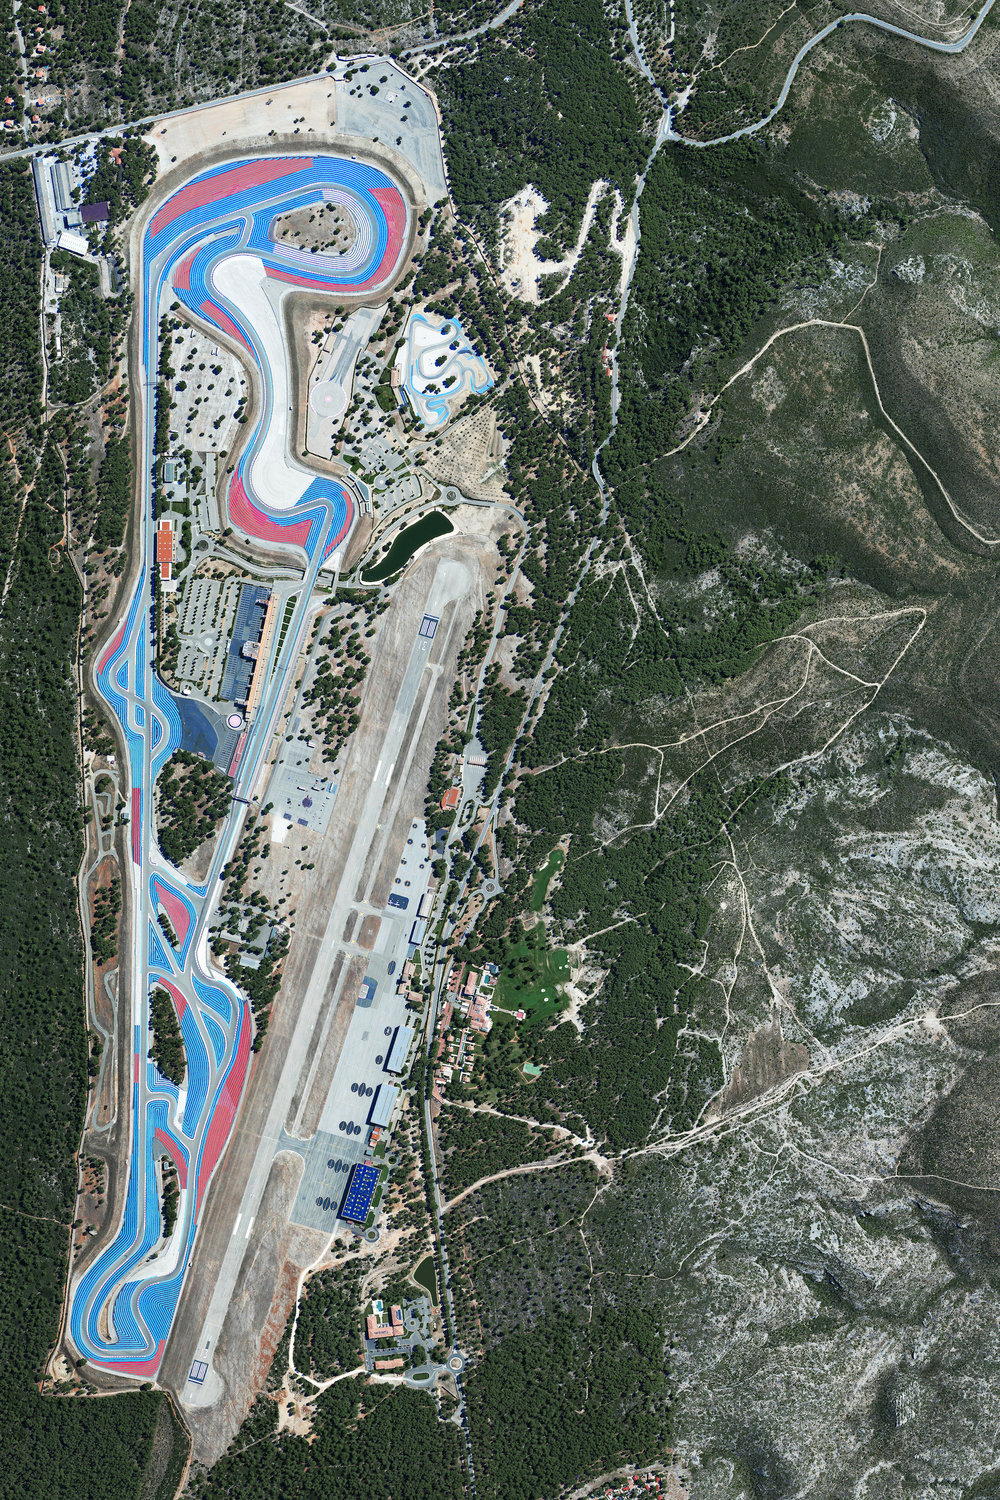 12/6/2015 Circuit Paul Ricard Le Castellet, France 43°15′2″N 5°47′30″E   Circuit Paul Ricard is a motorsport track at Le Castellet, near Marseille, France. The track is known for its distinctive black and blue runoff areas called the Blue Zone. Additional deeper run-off areas known as the Red Zone use a more abrasive surface designed to maximize tire grip and minimize braking distance.